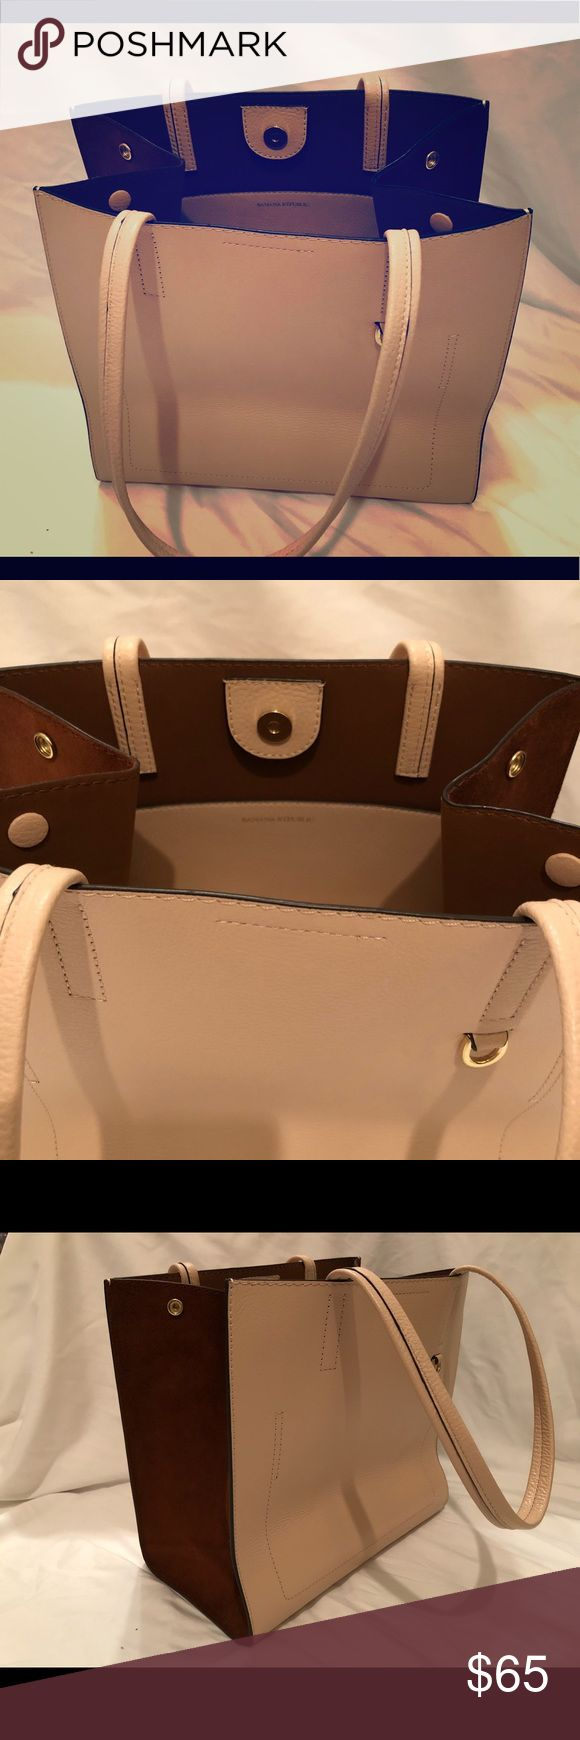 Banana Republic Trapeze Tote Bag Super elegant bag! Carried twice. Looks brand new. It's a very light pink/beige color. Banana Republic Bags